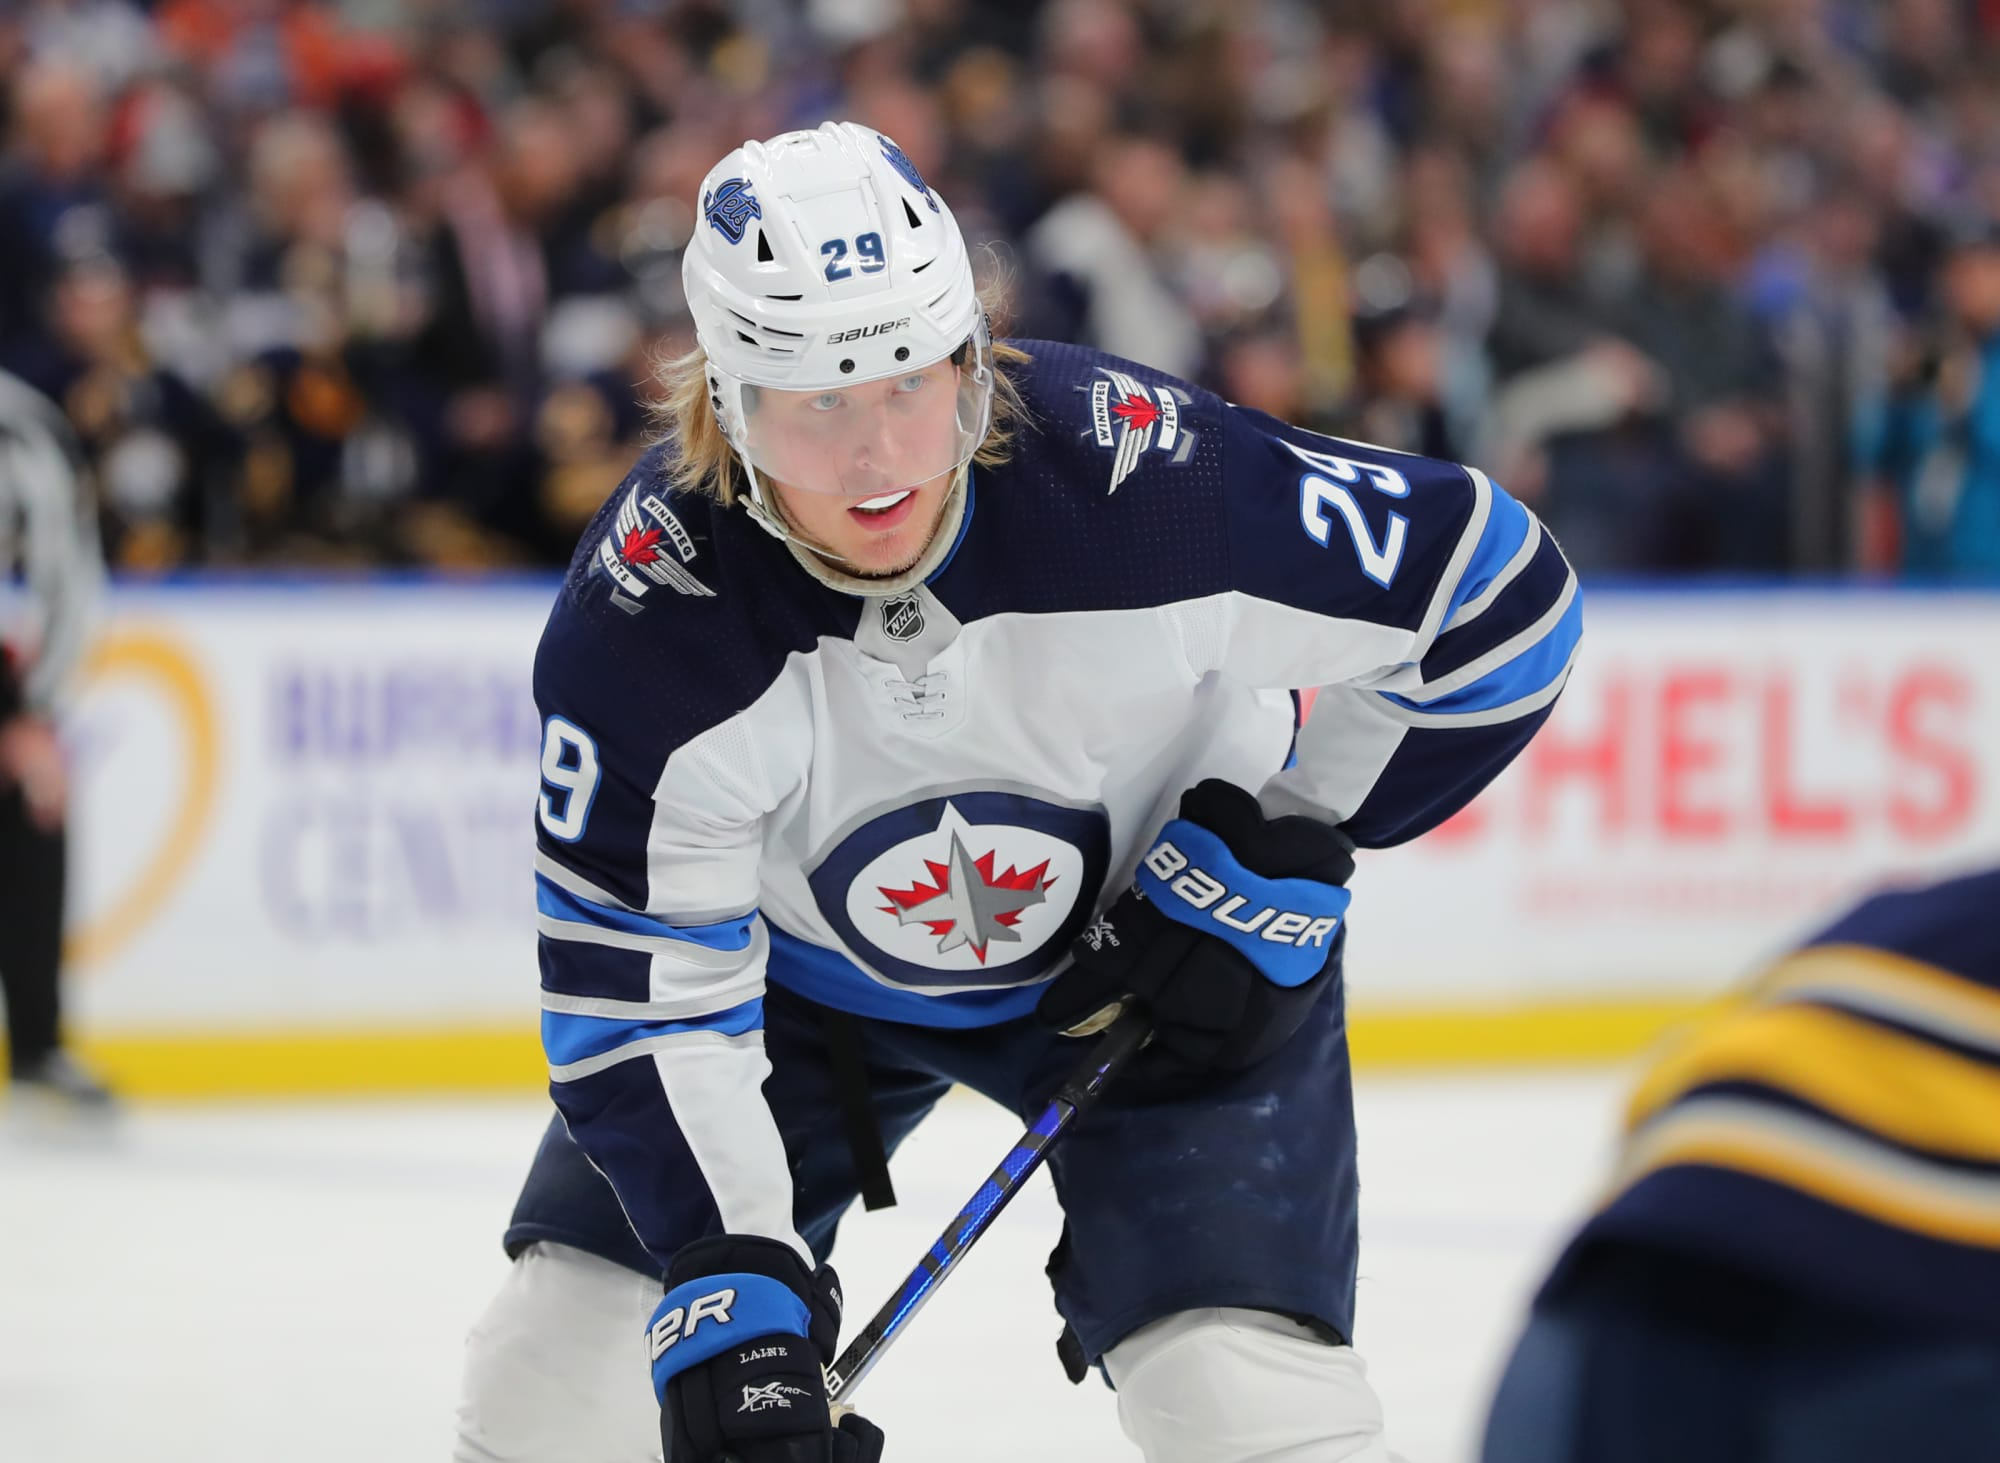 Should the Canucks try to trade for Jets star Patrik Laine?